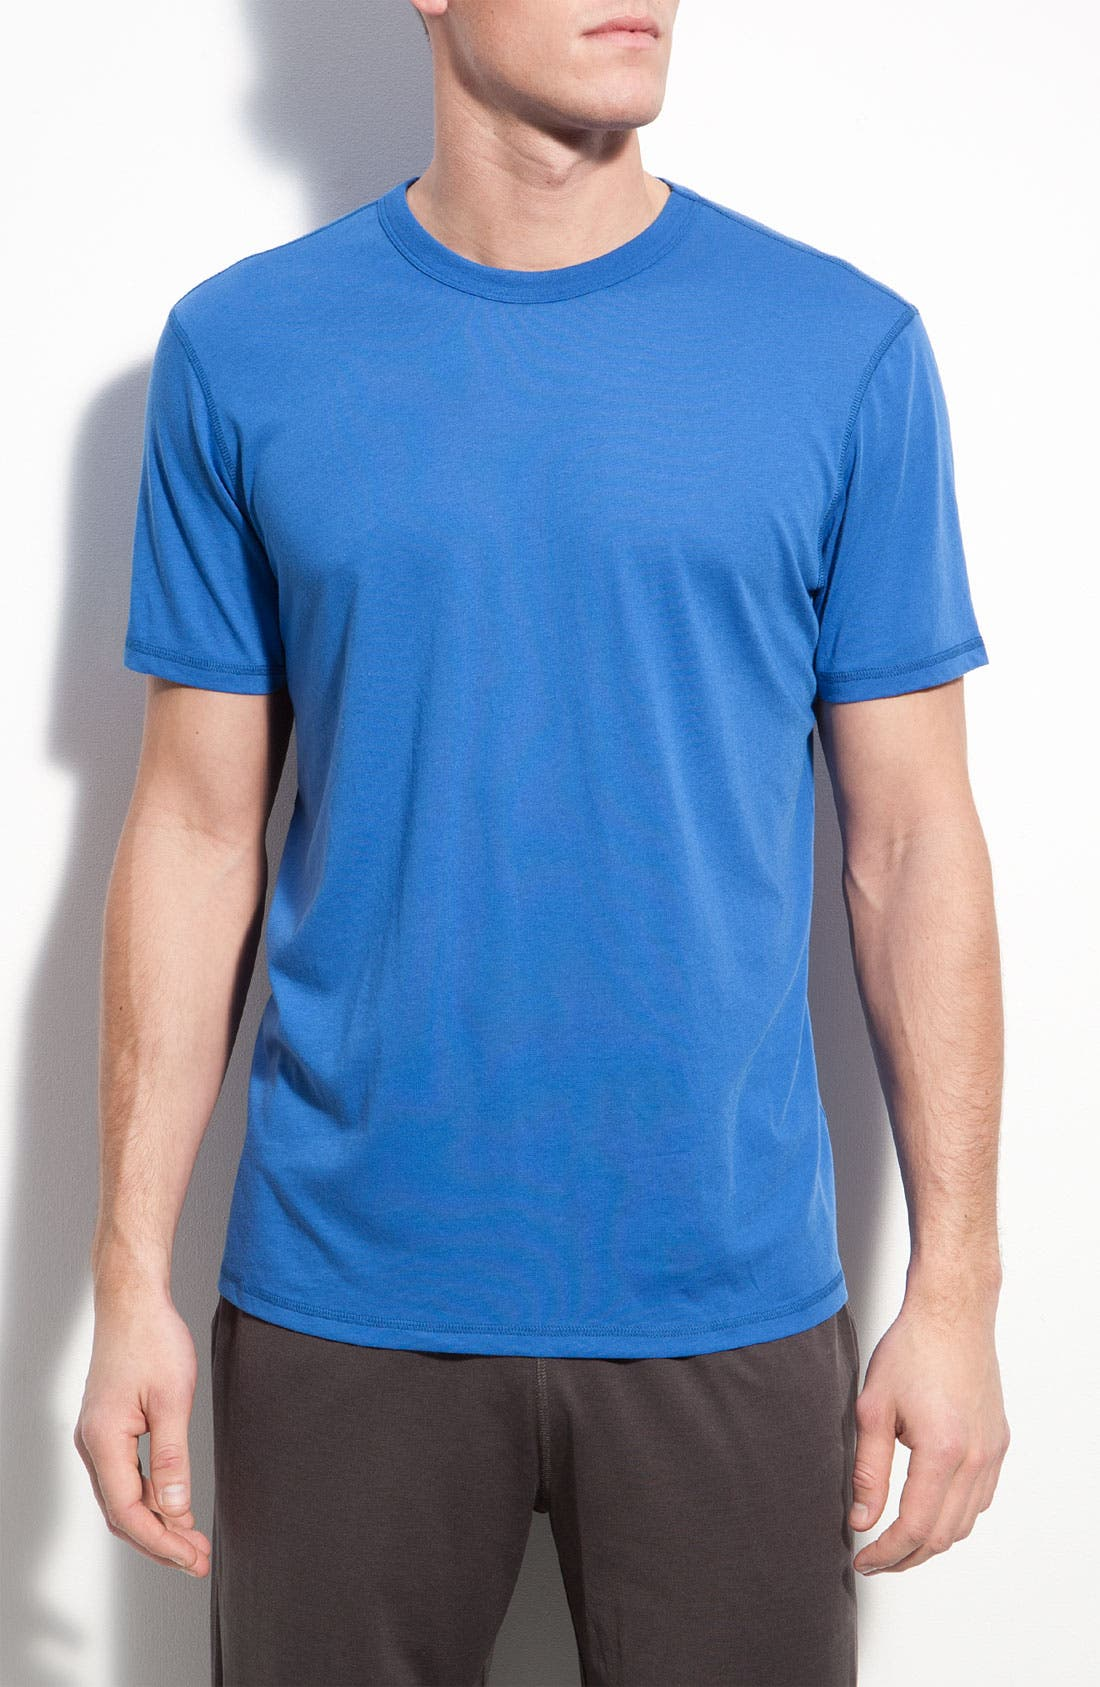 Alternate Image 1 Selected - Daniel Buchler Short Sleeve T-Shirt